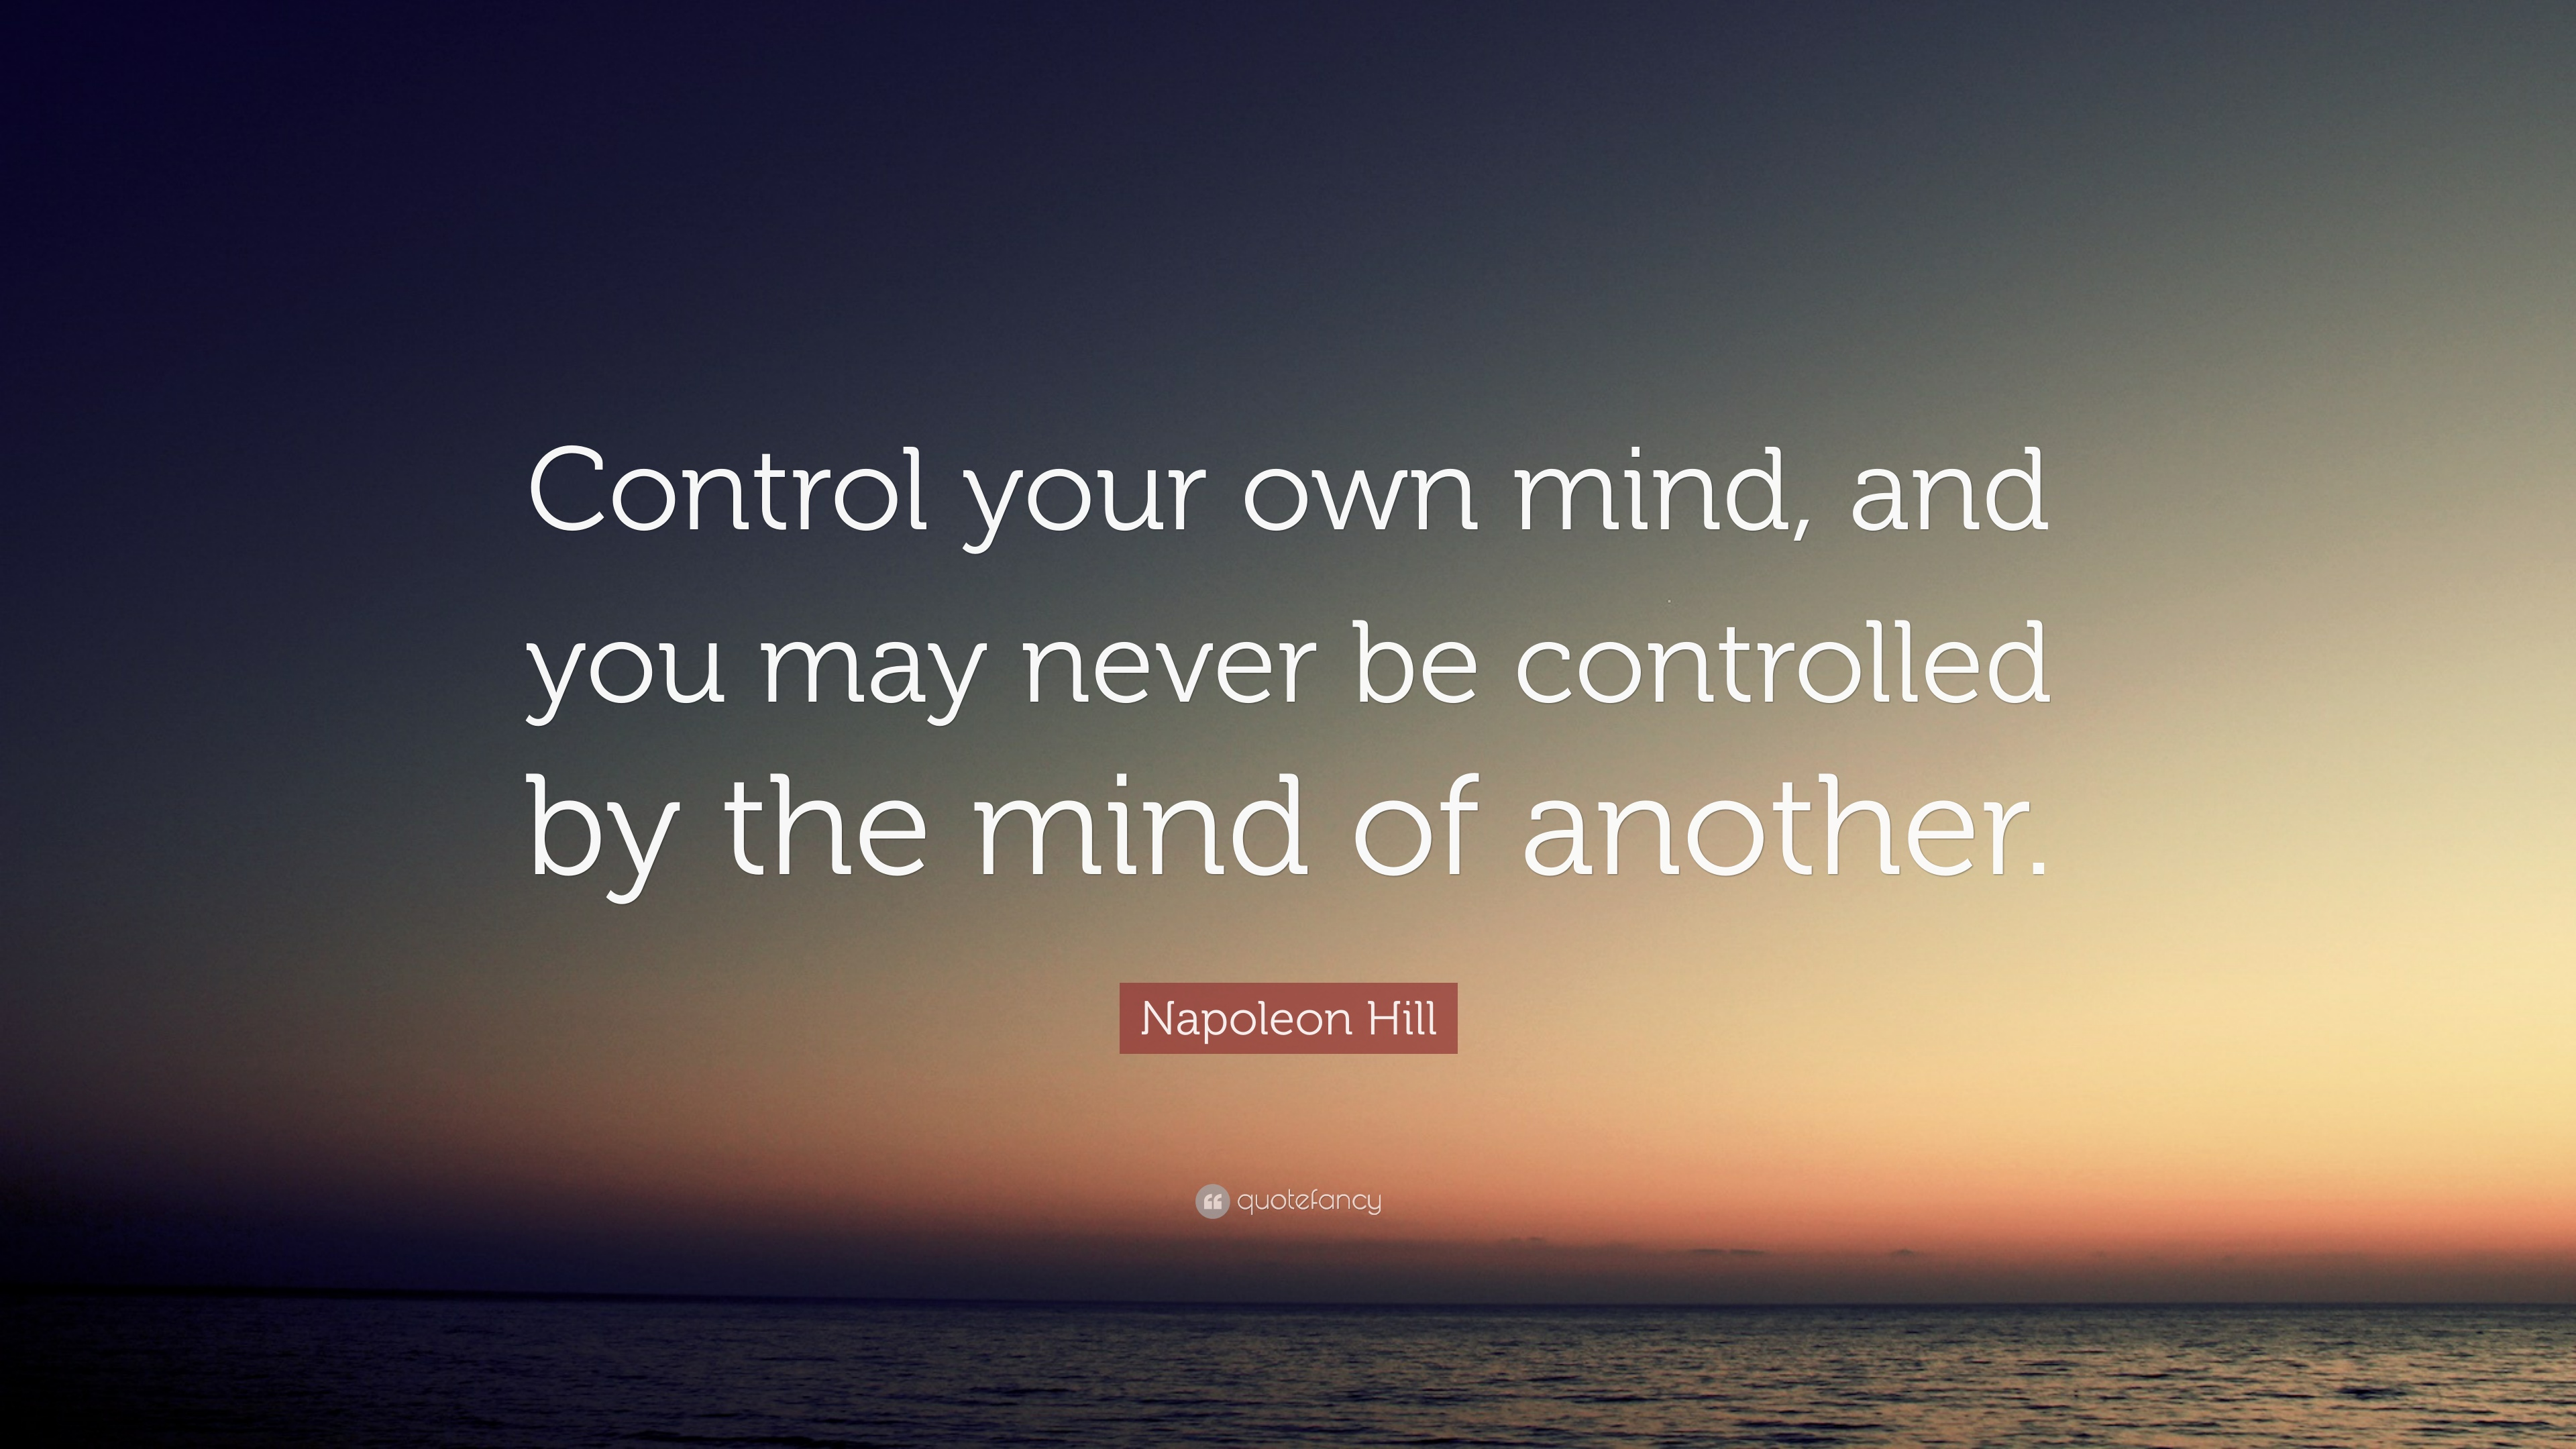 1715969-Napoleon-Hill-Quote-Control-your-own-mind-and-you-may-never-be.jpg